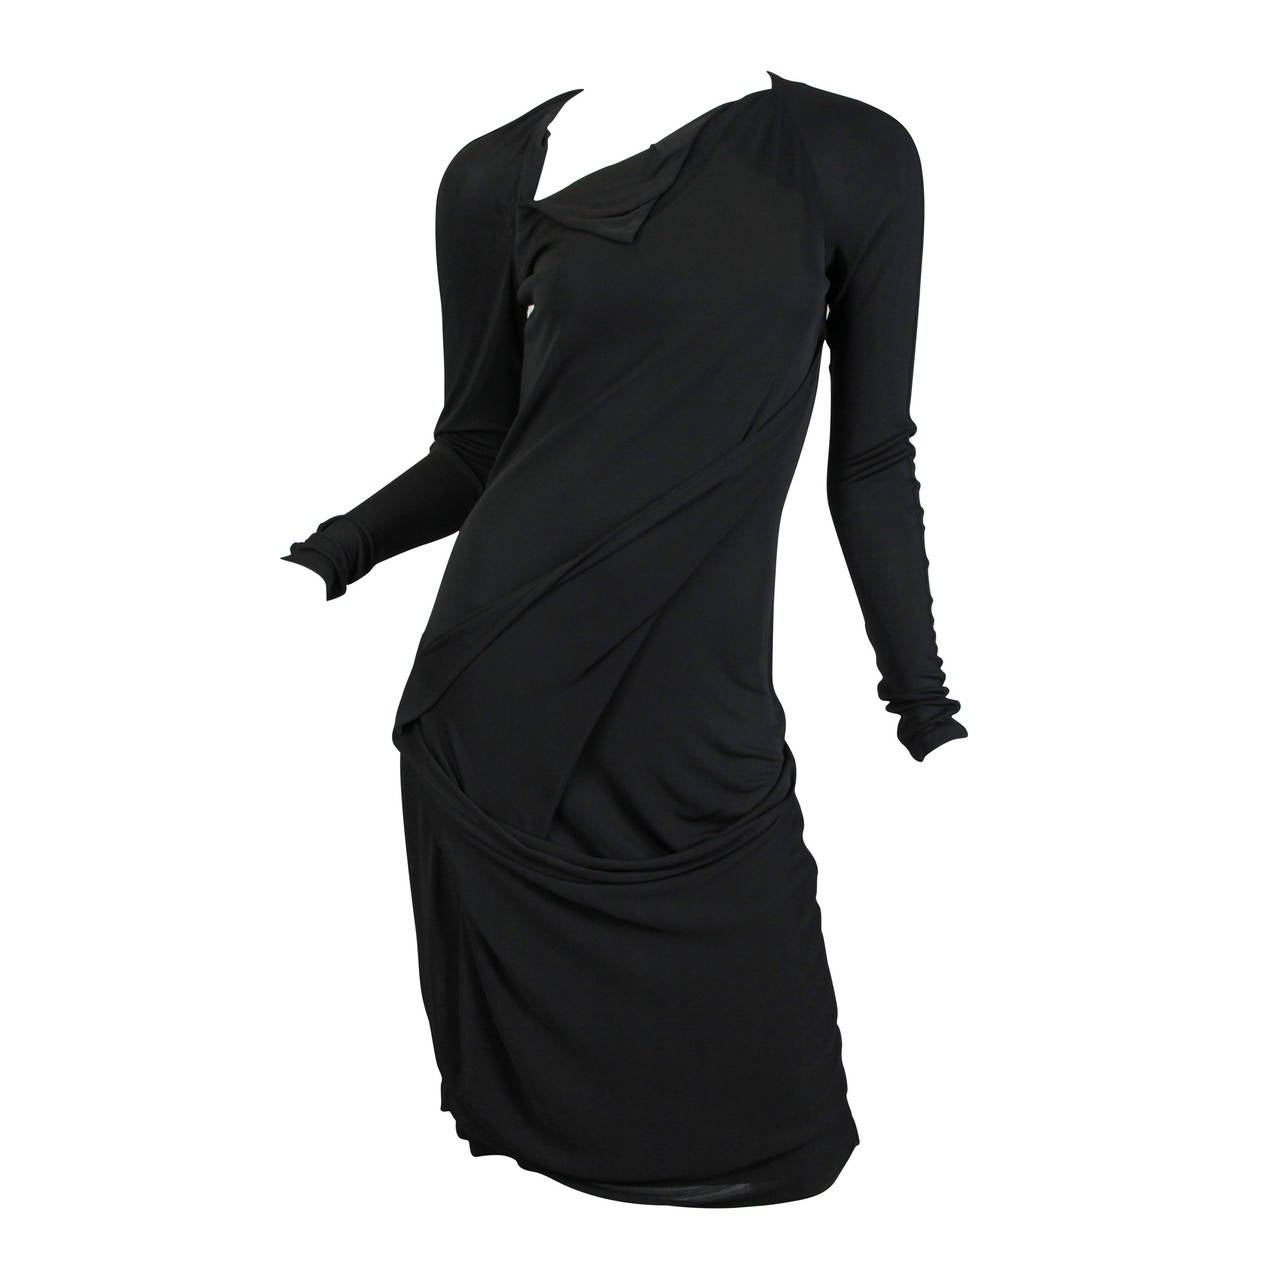 Martin Margiela Black Draped Jersey Dress 1